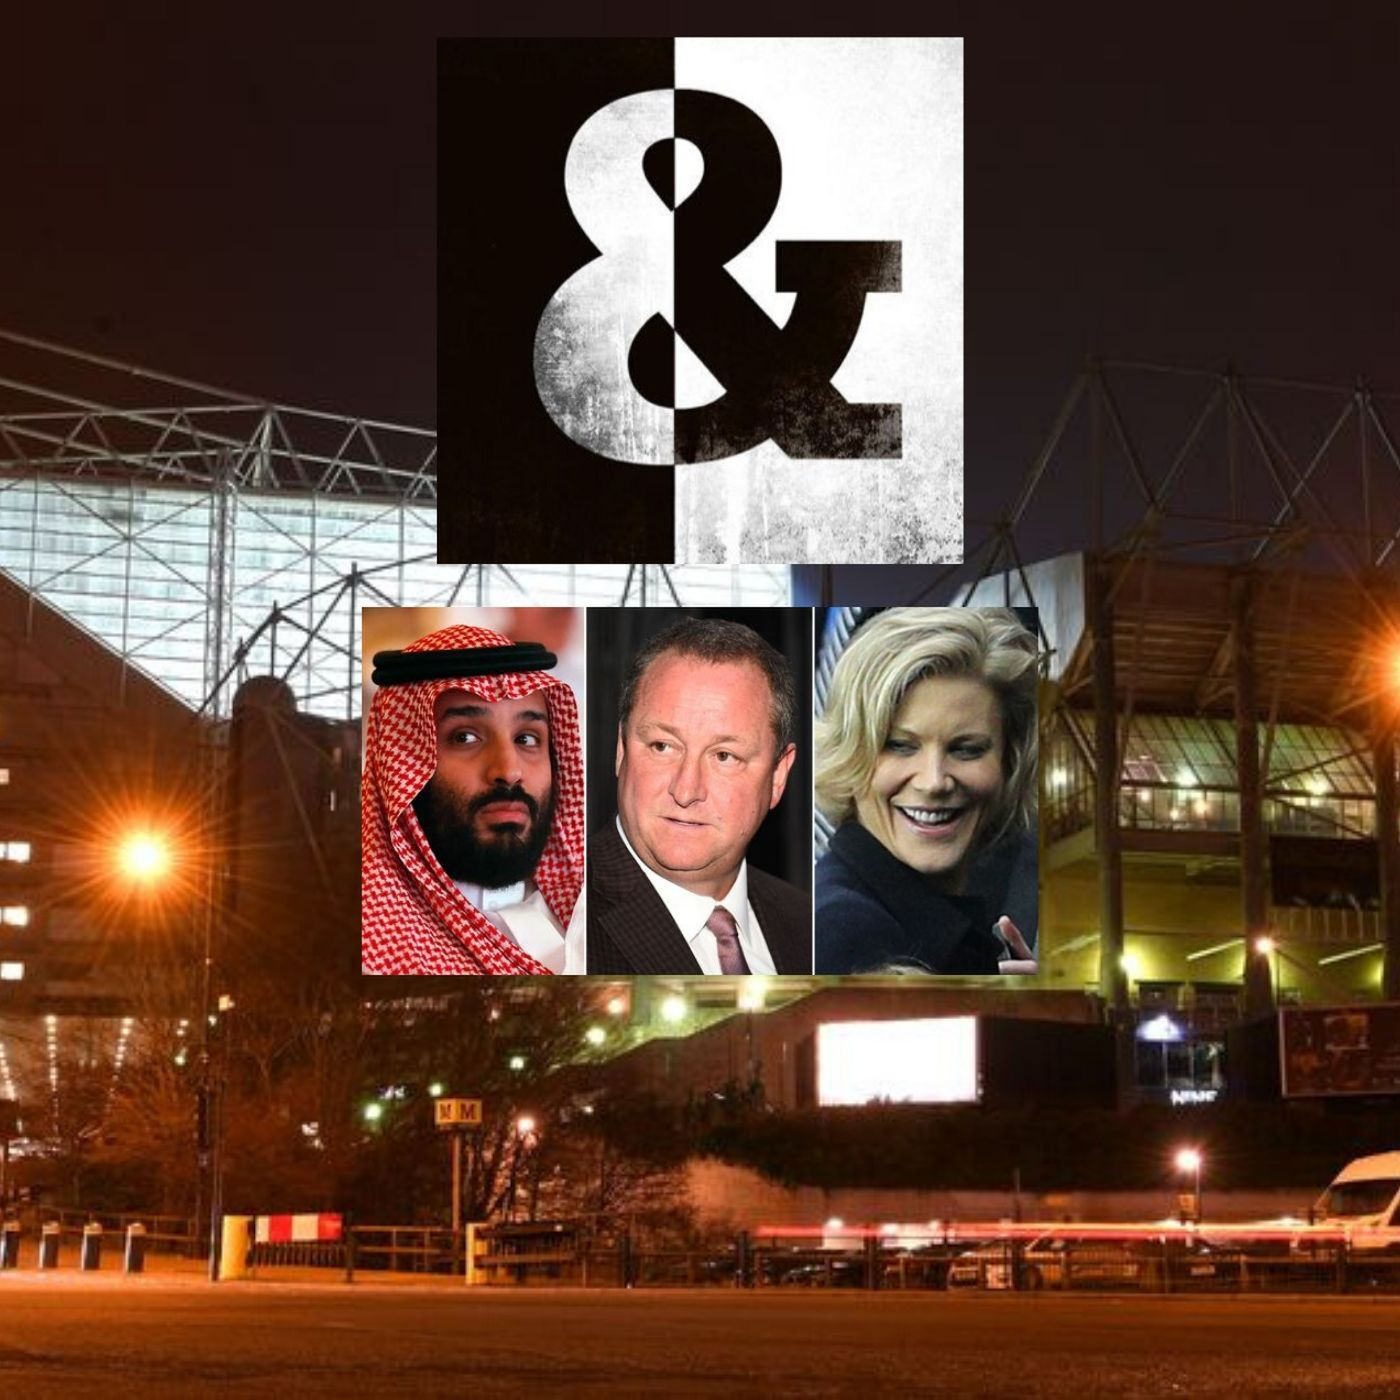 NUFC takeover special - Premier League test, Companies House &  what happens next